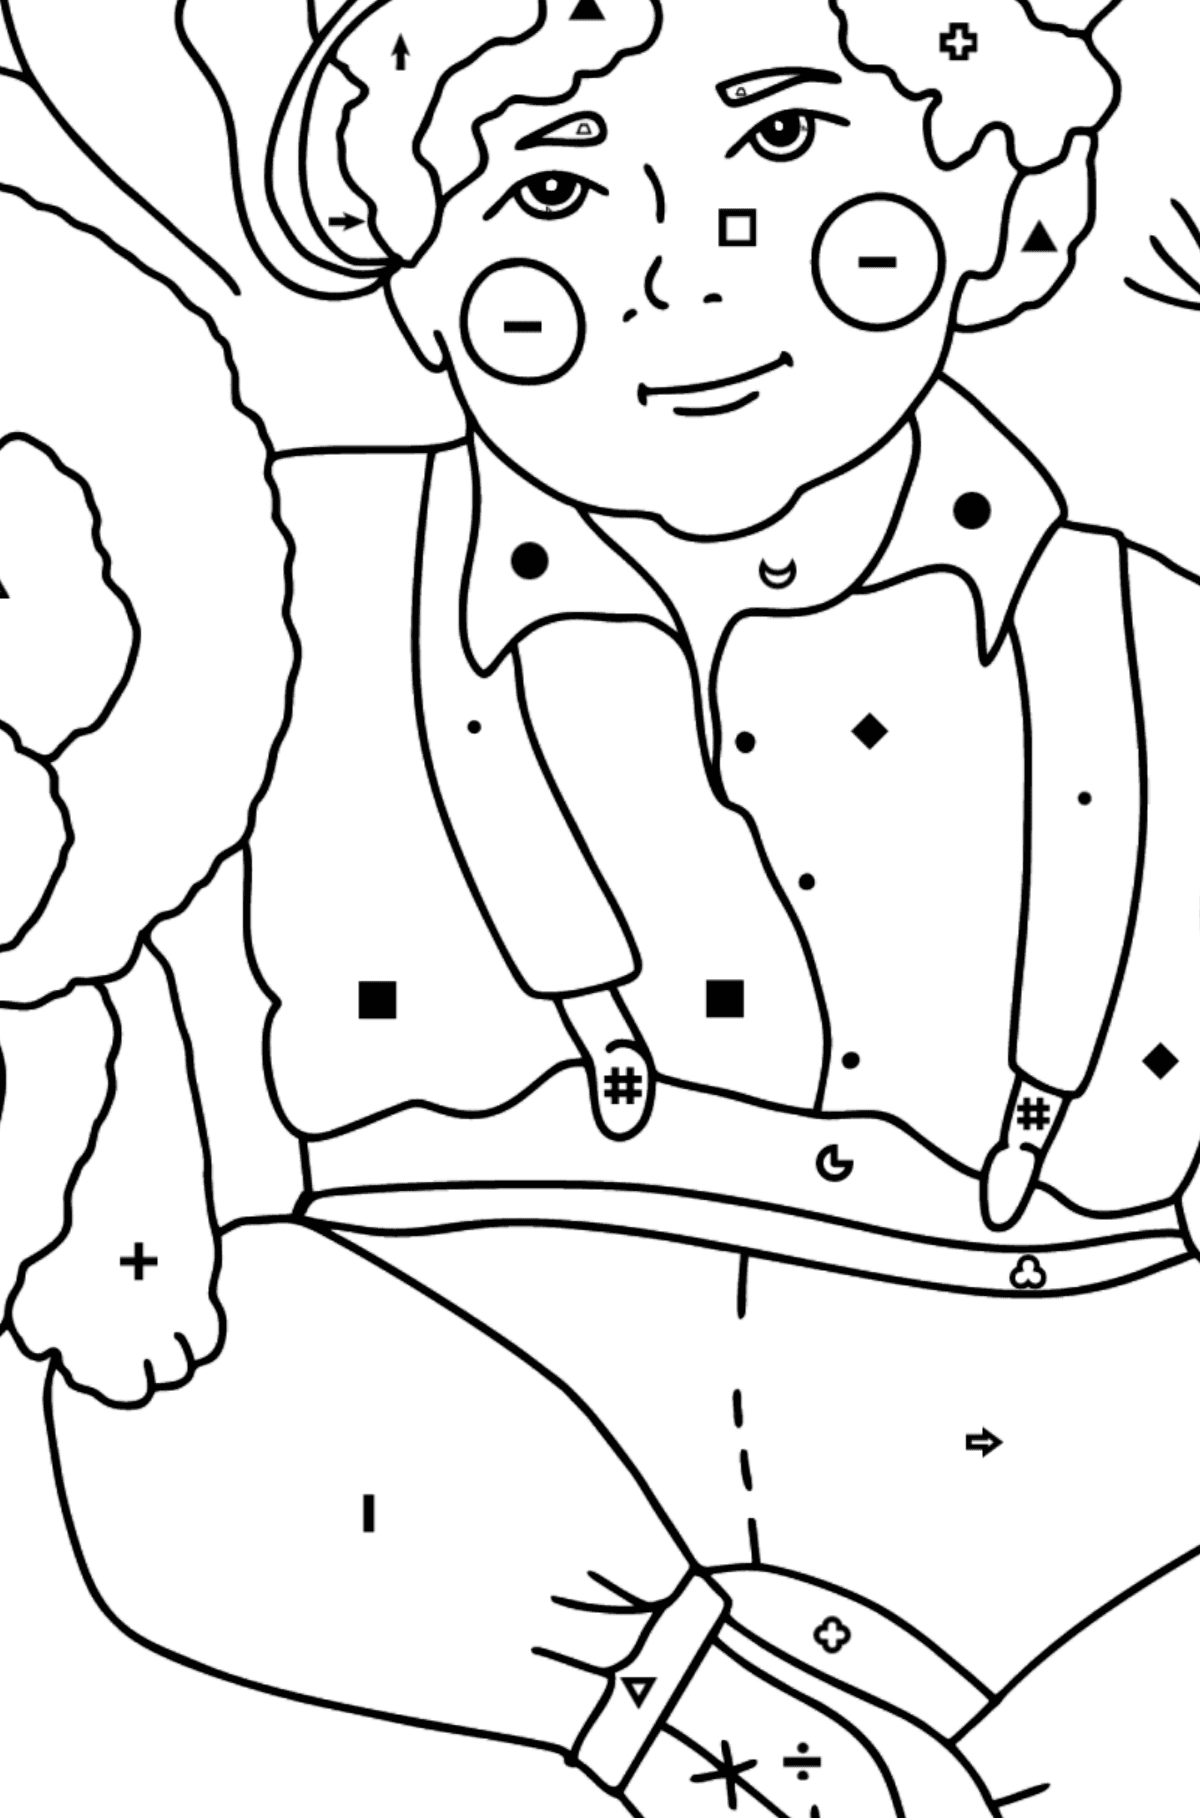 Boy and Biron coloring page - Coloring by Symbols and Geometric Shapes for Kids